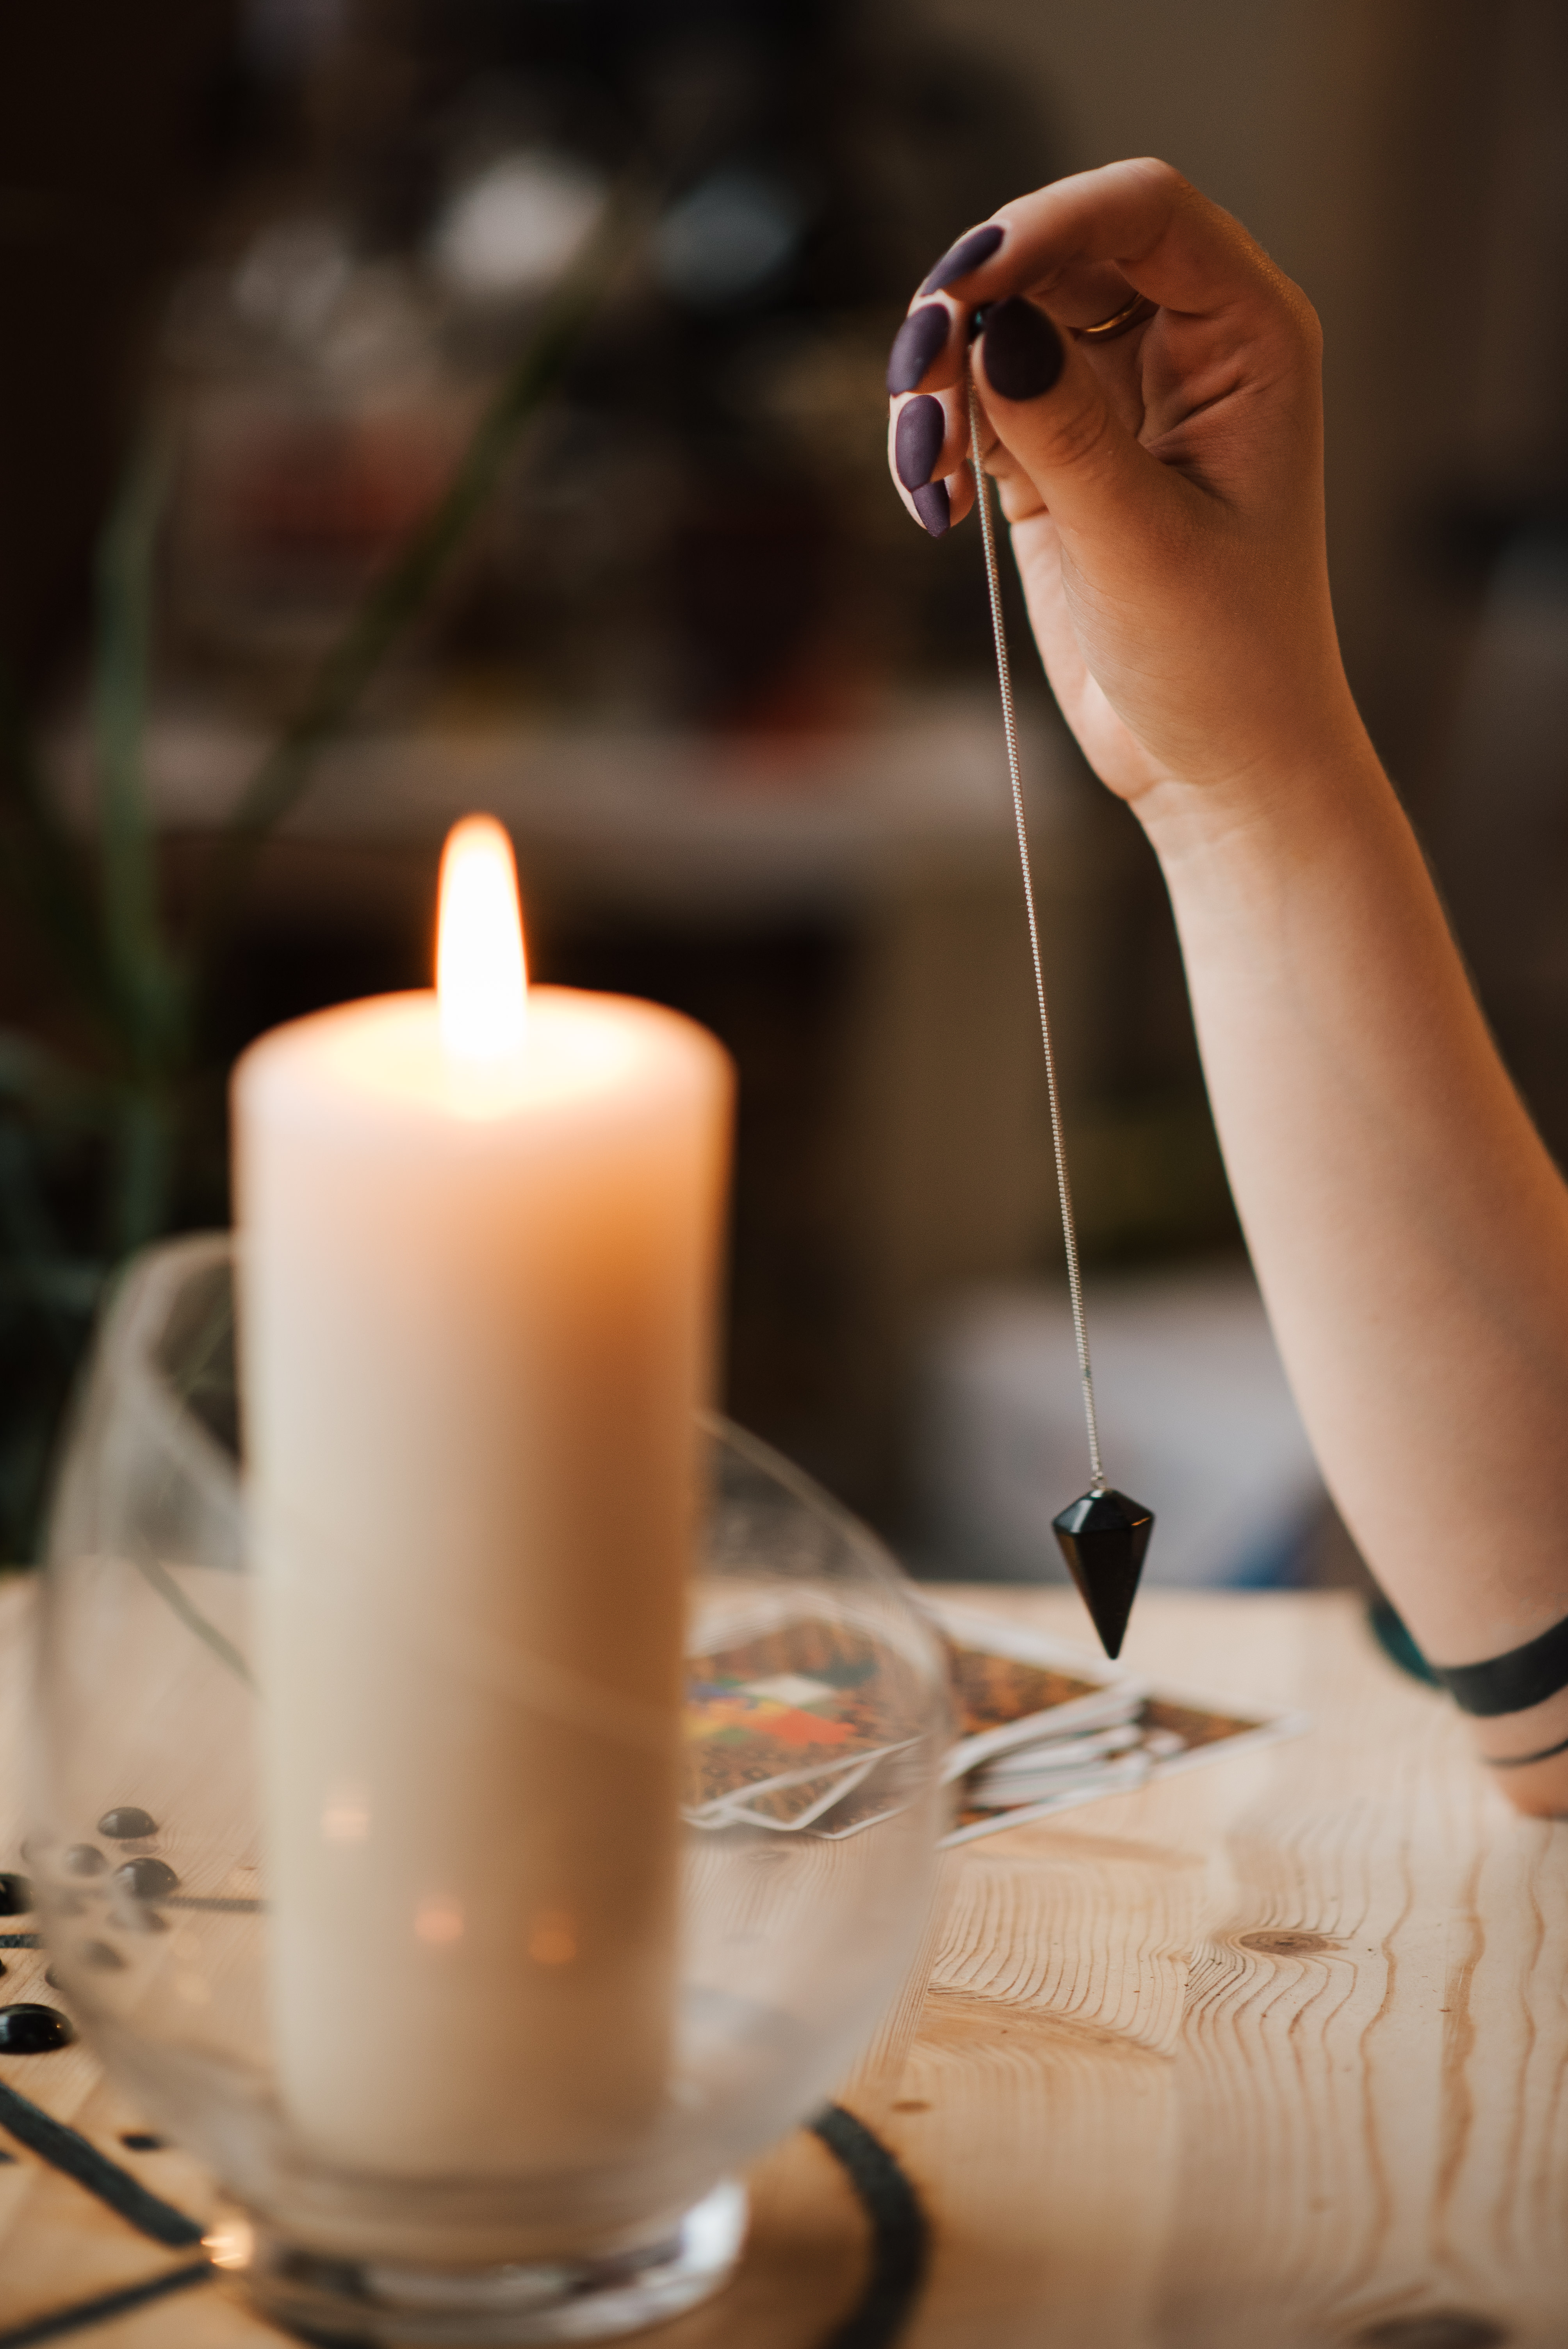 crop fortune teller with amulet near shiny candle